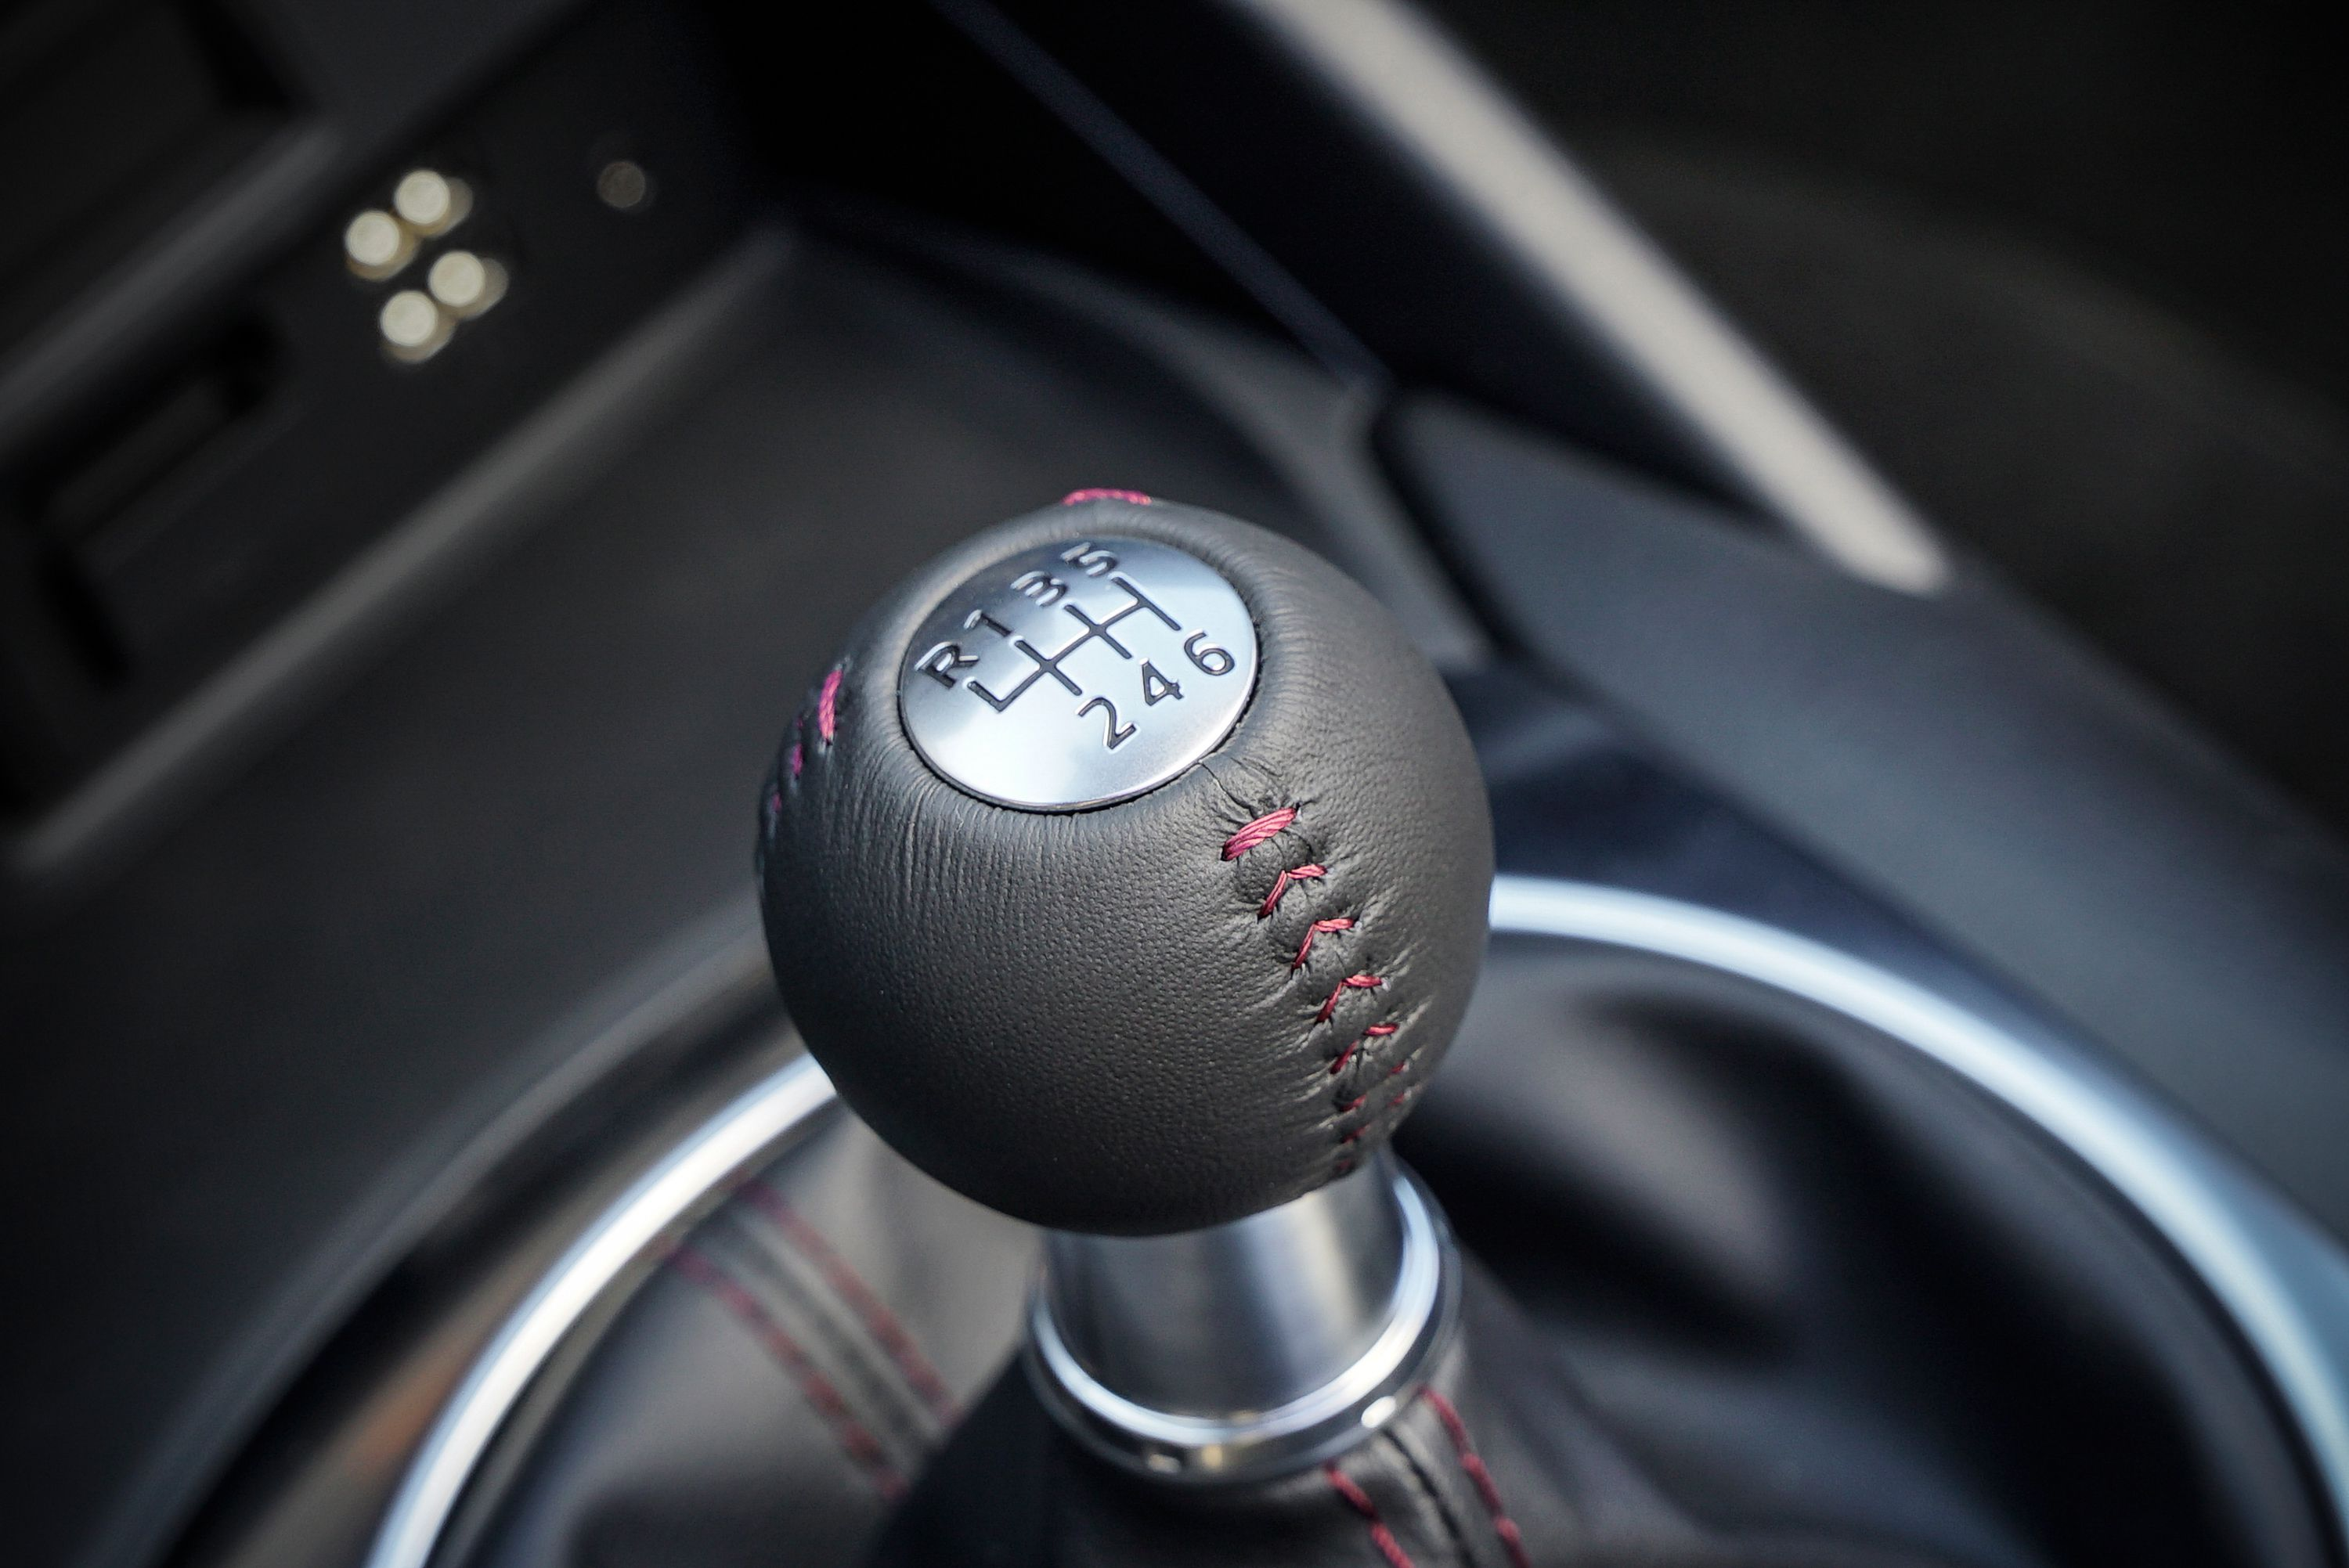 Downshift: The death of the manual transmission - The Globe